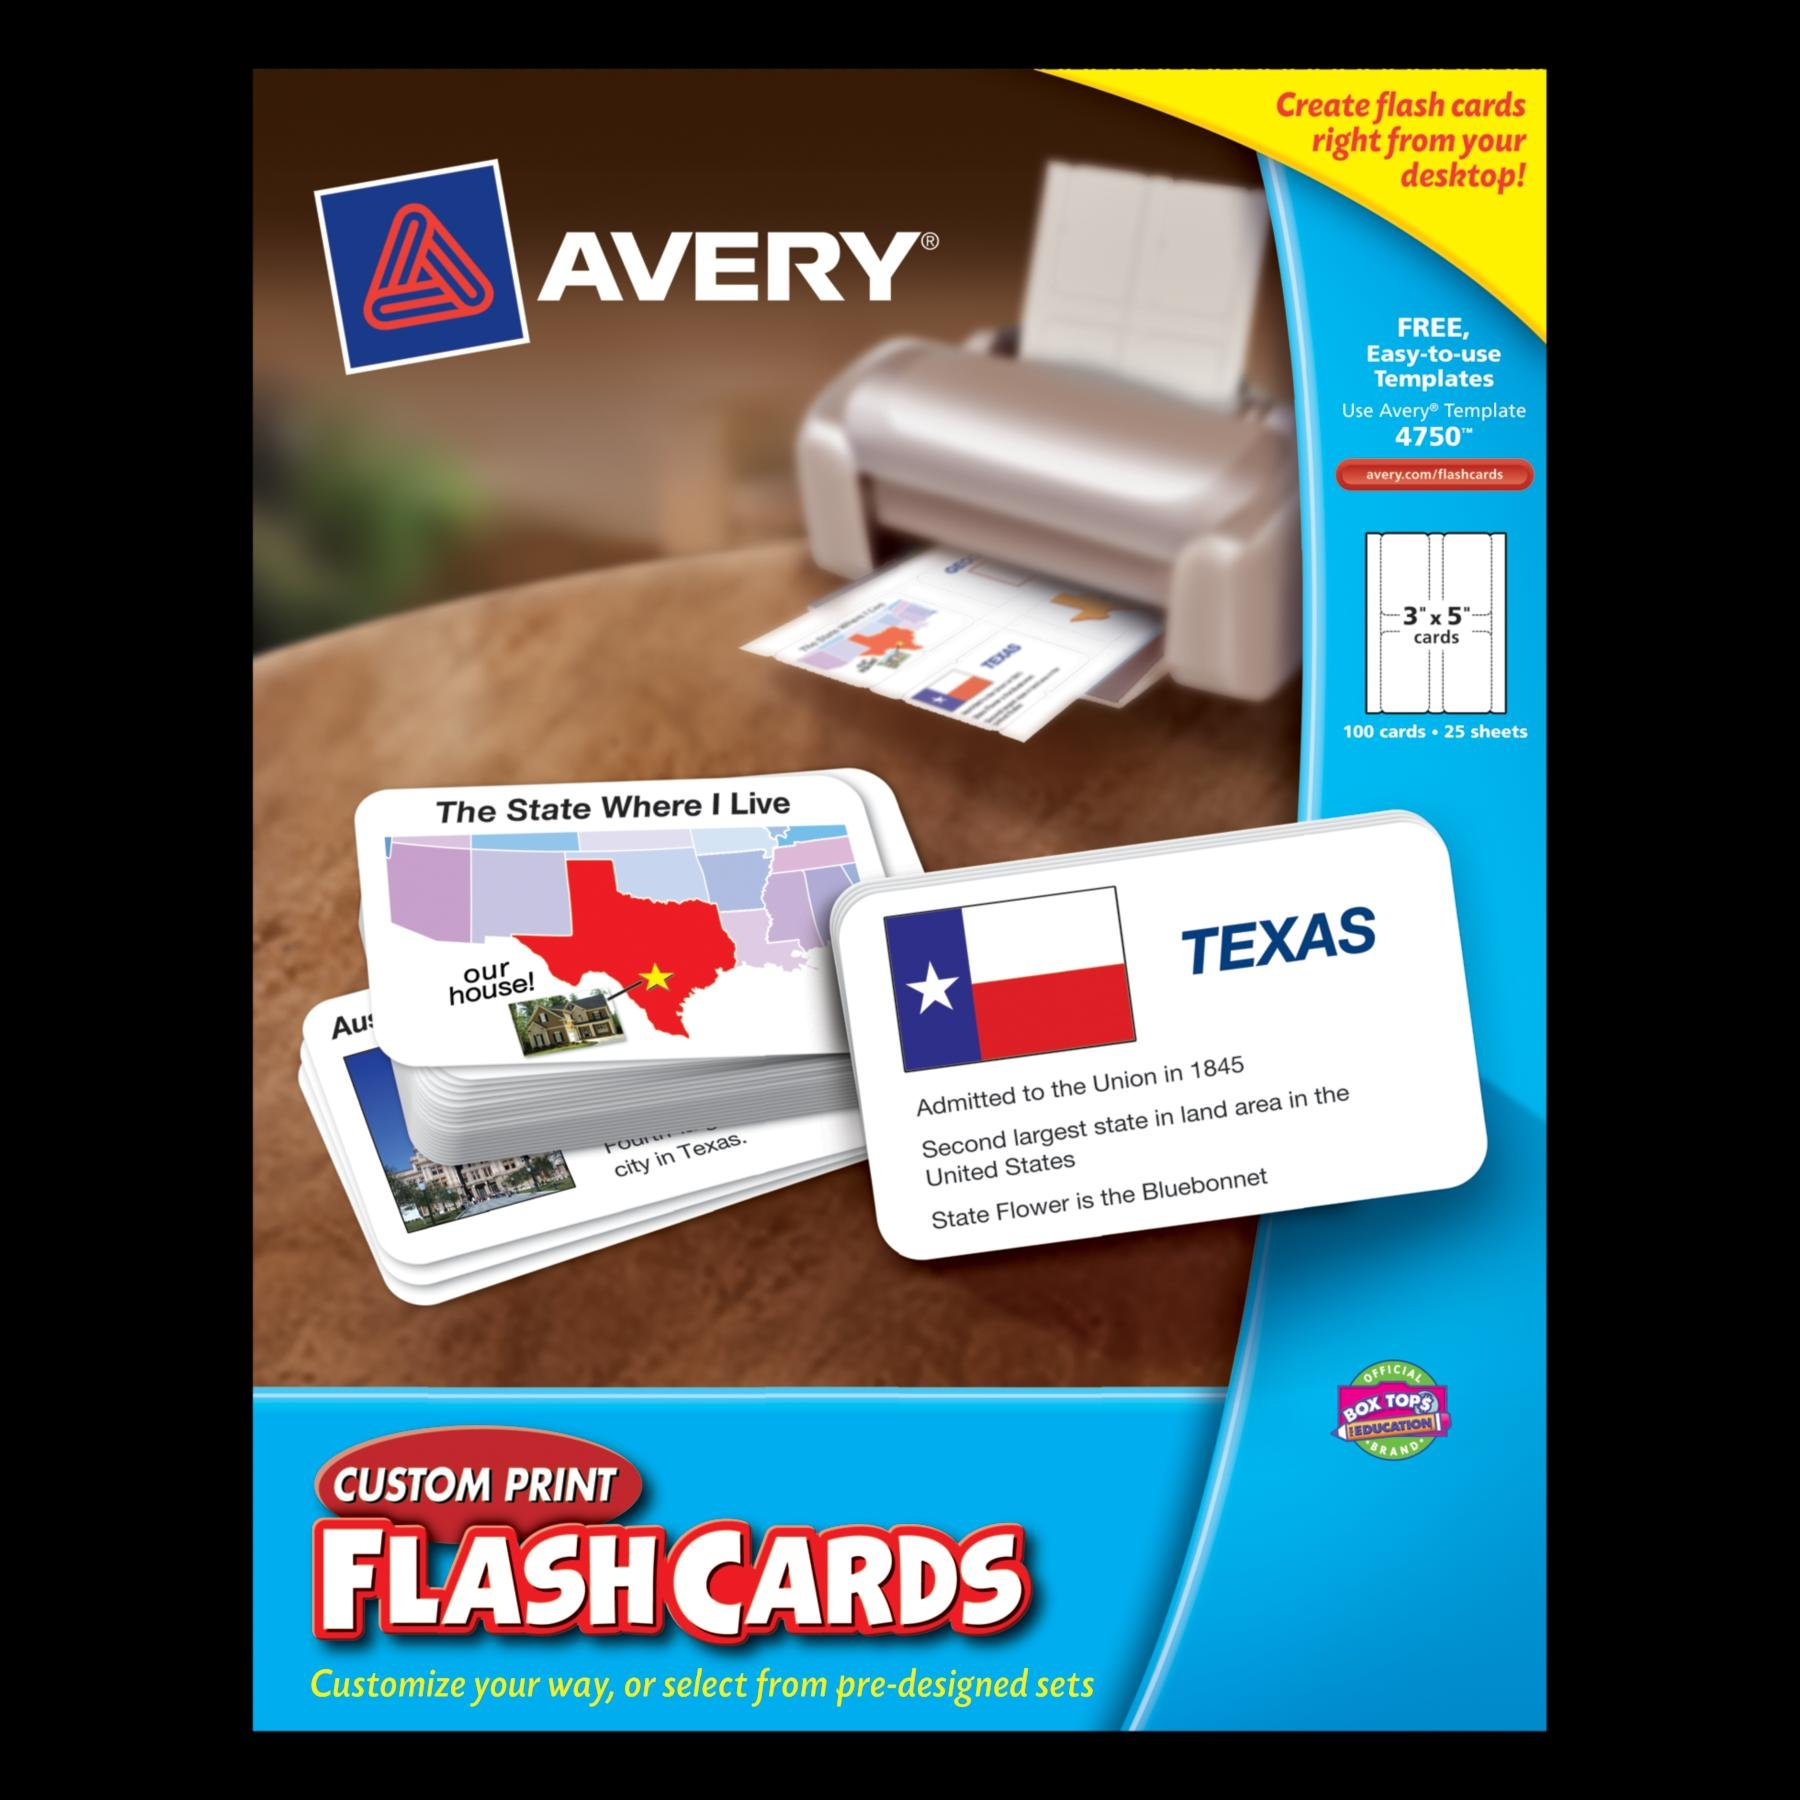 Avery Custom Print Flash Cards, 3 x 5 Inches, for Inkjet and Laser Printers, 100 Pack (04750) by Avery (Image #2)